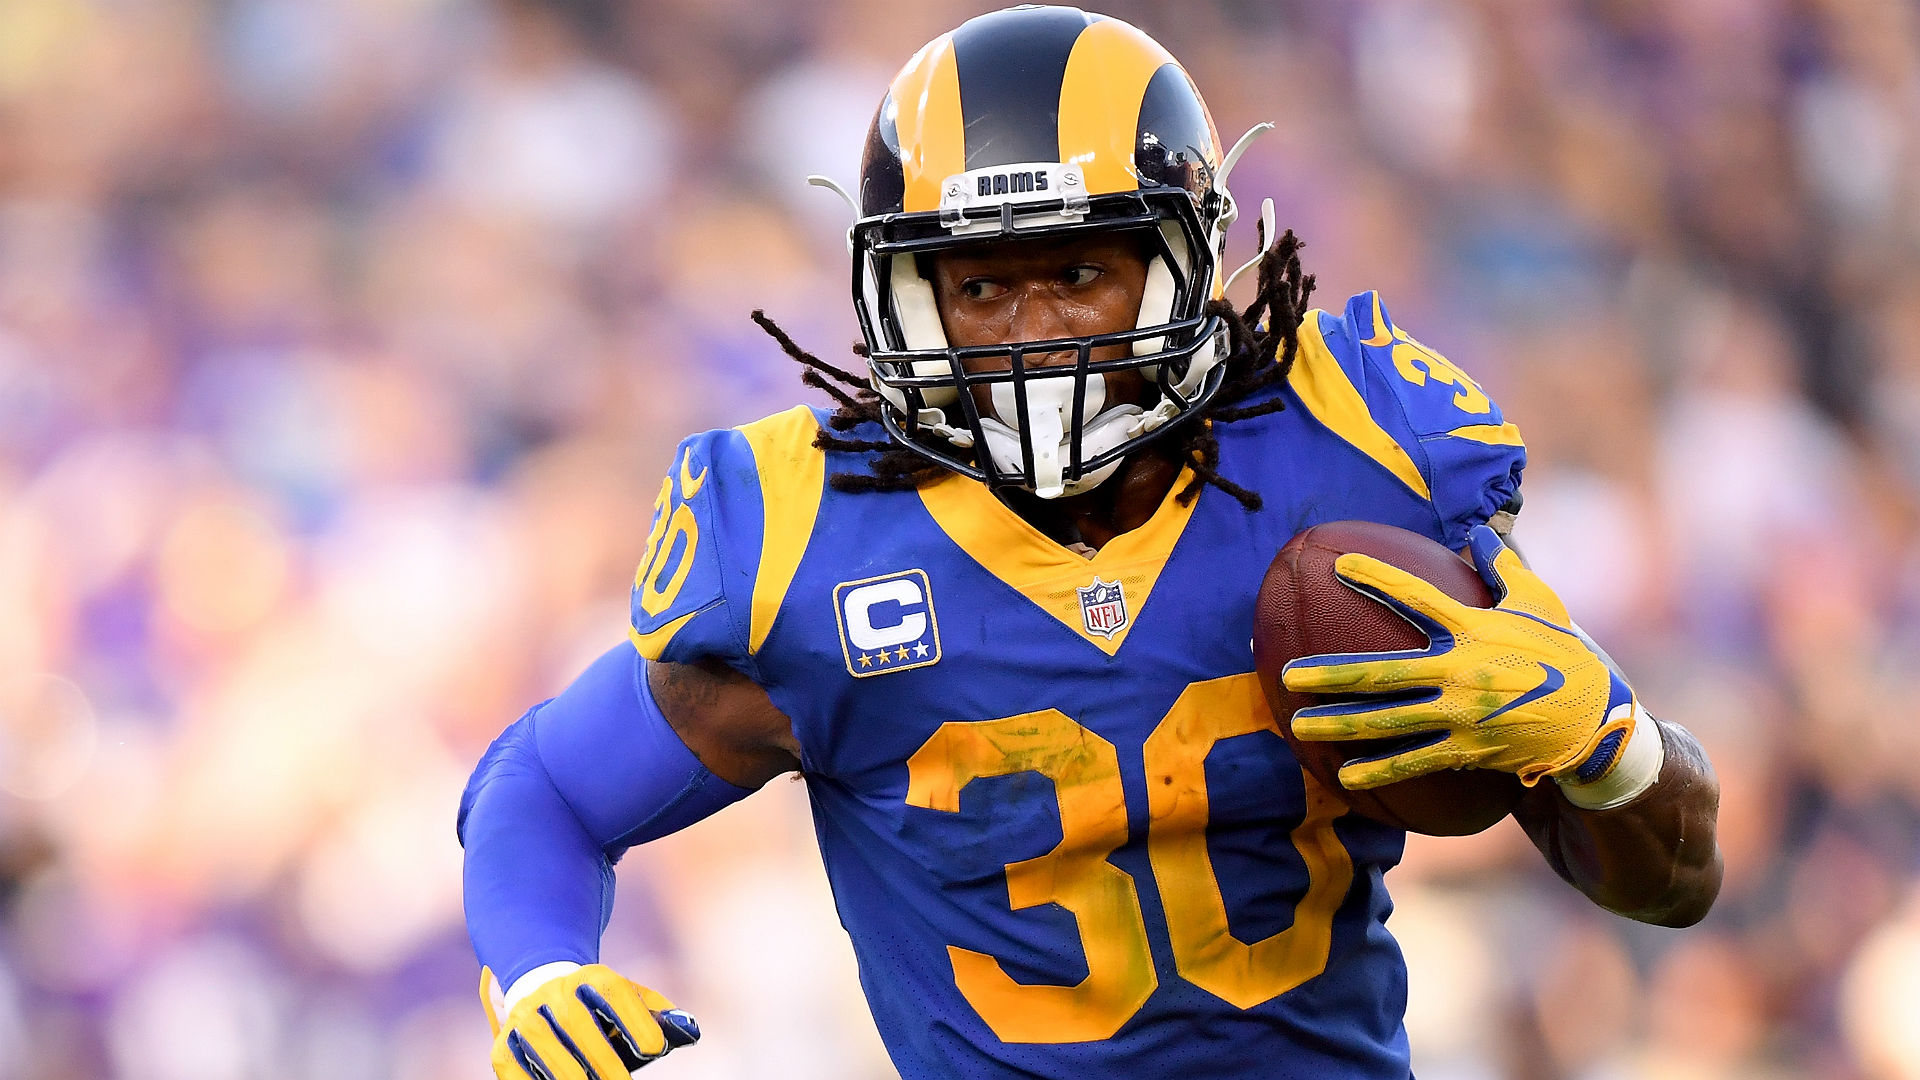 758efd89 Rams RB Todd Gurley expected to play vs. Cowboys | Sporting News